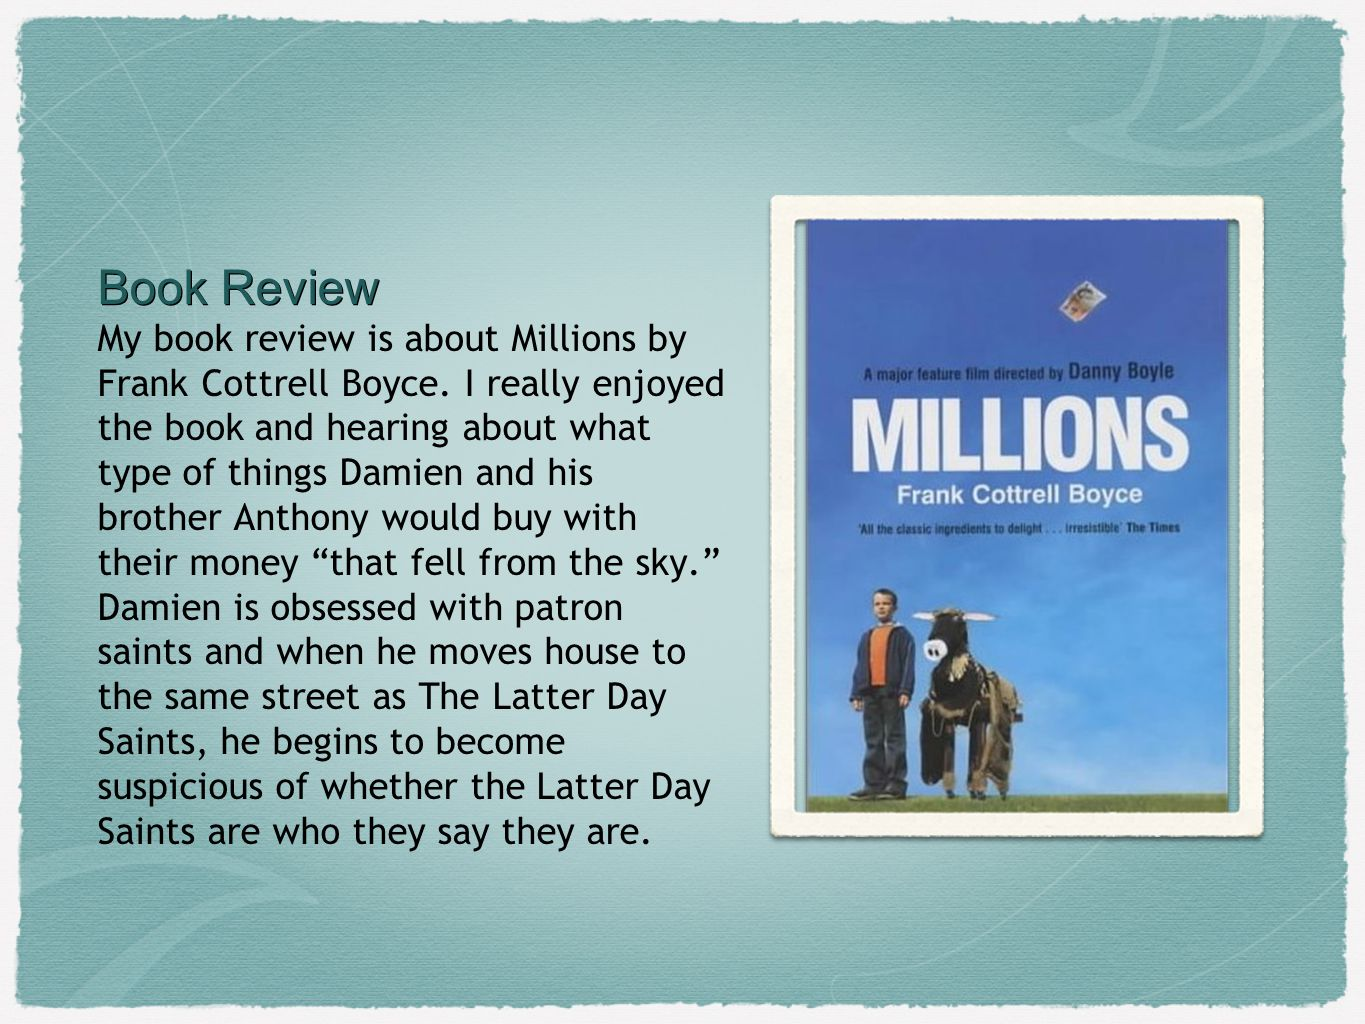 Book Review Book Review My book review is about Millions by Frank Cottrell Boyce.